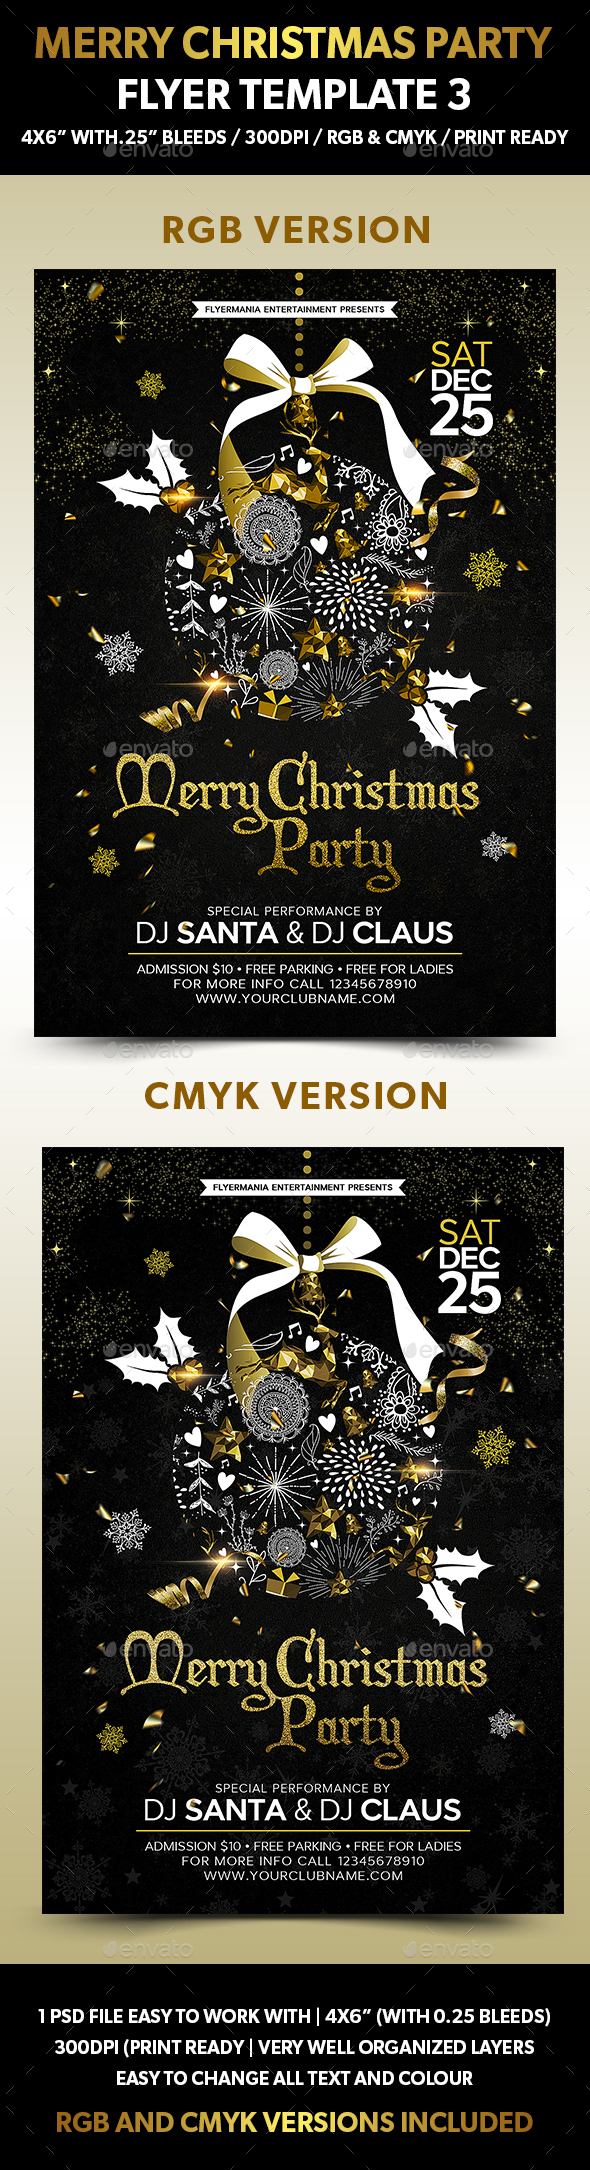 Merry Christmas Party Flyer Template 3 - Flyers Print Templates